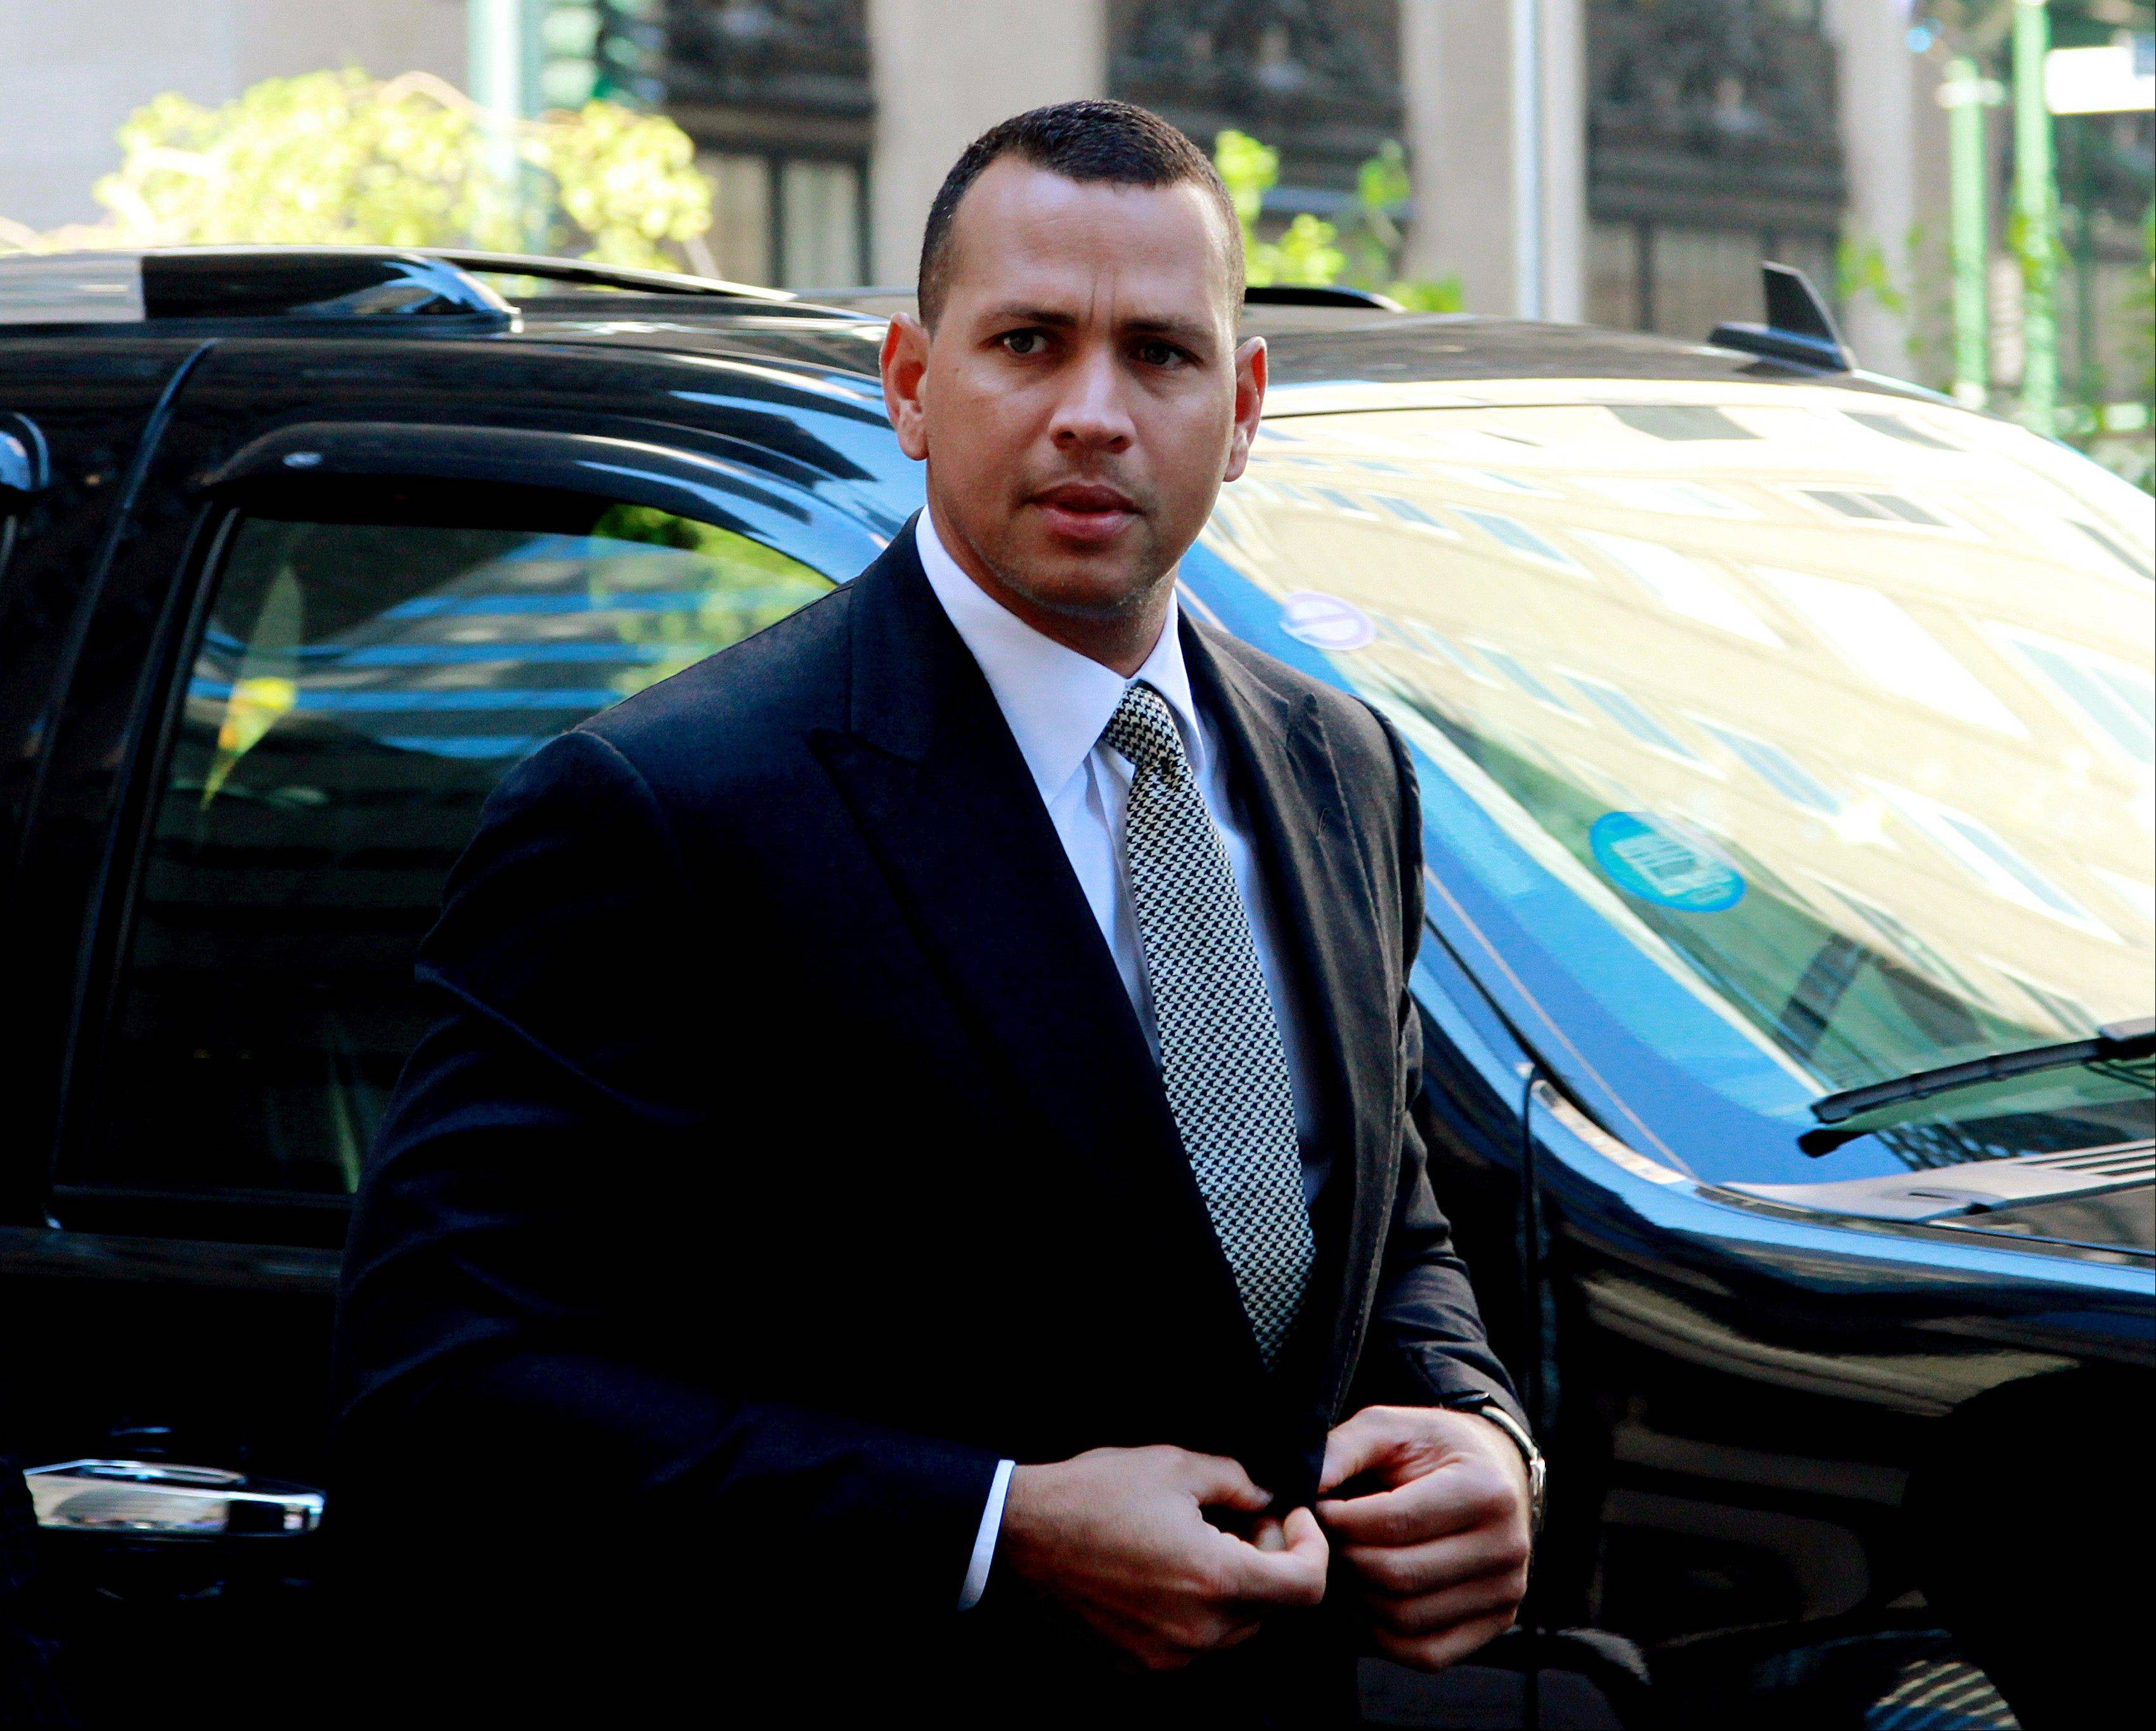 "This Oct. 1, 2013, file photo shows New York Yankees' Alex Rodriguez arrivng at the offices of Major League Baseball in New York. Rodriguez sued Major League Baseball and its players' union Monday, Jan. 13, 2014 seeking to overturn a season-long suspension imposed by an arbitrator who ruled there was ""clear and convincing evidence"" he used three banned substances and twice tried to obstruct the sport's drug investigation."